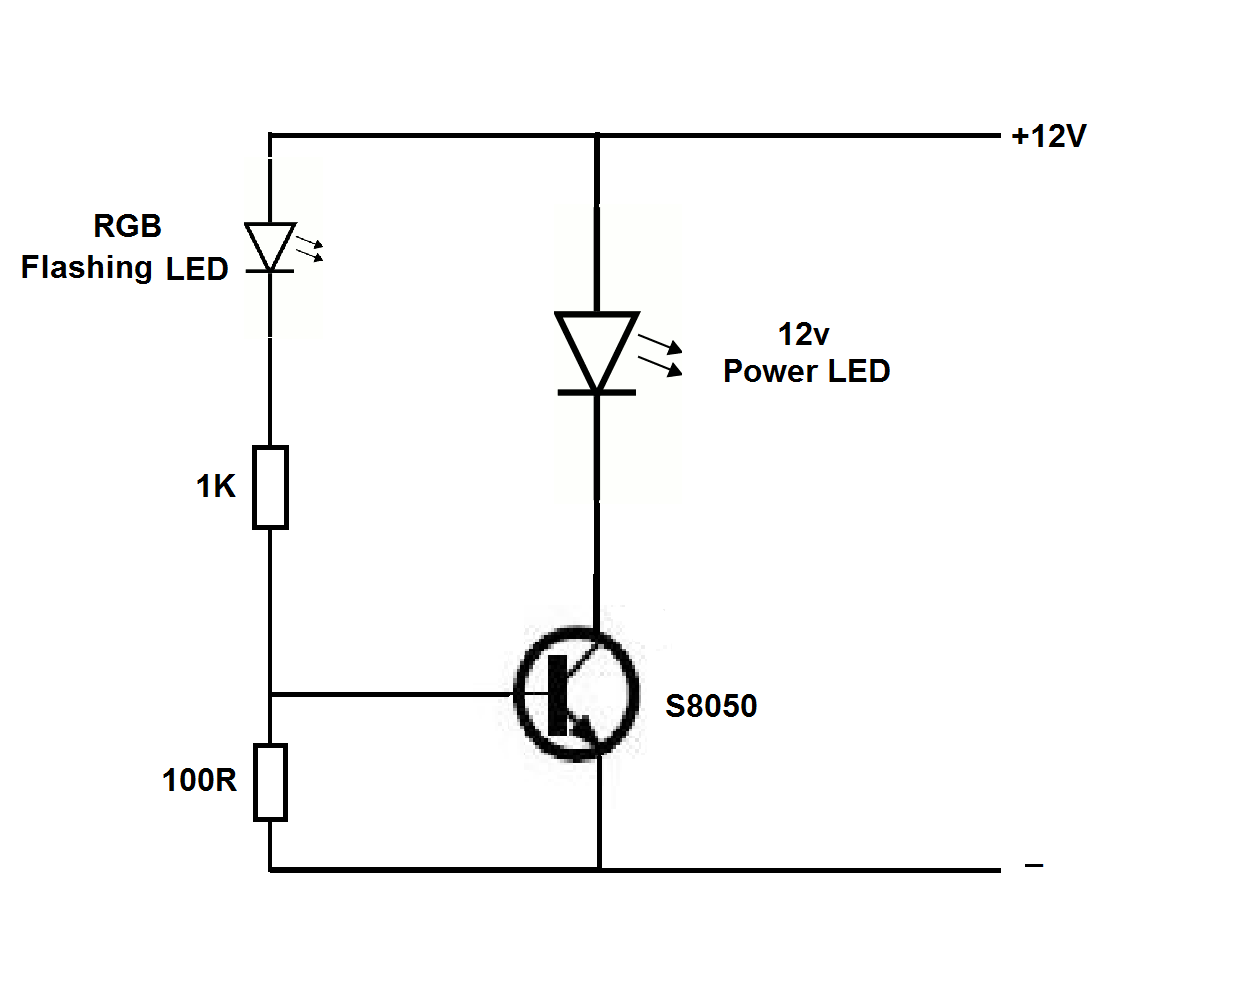 flasher%2Busing%2Bflashing%2BLED 12v power led flasher circuit using rgb flashing led ~ simple projects 12v flasher circuit diagram at bayanpartner.co